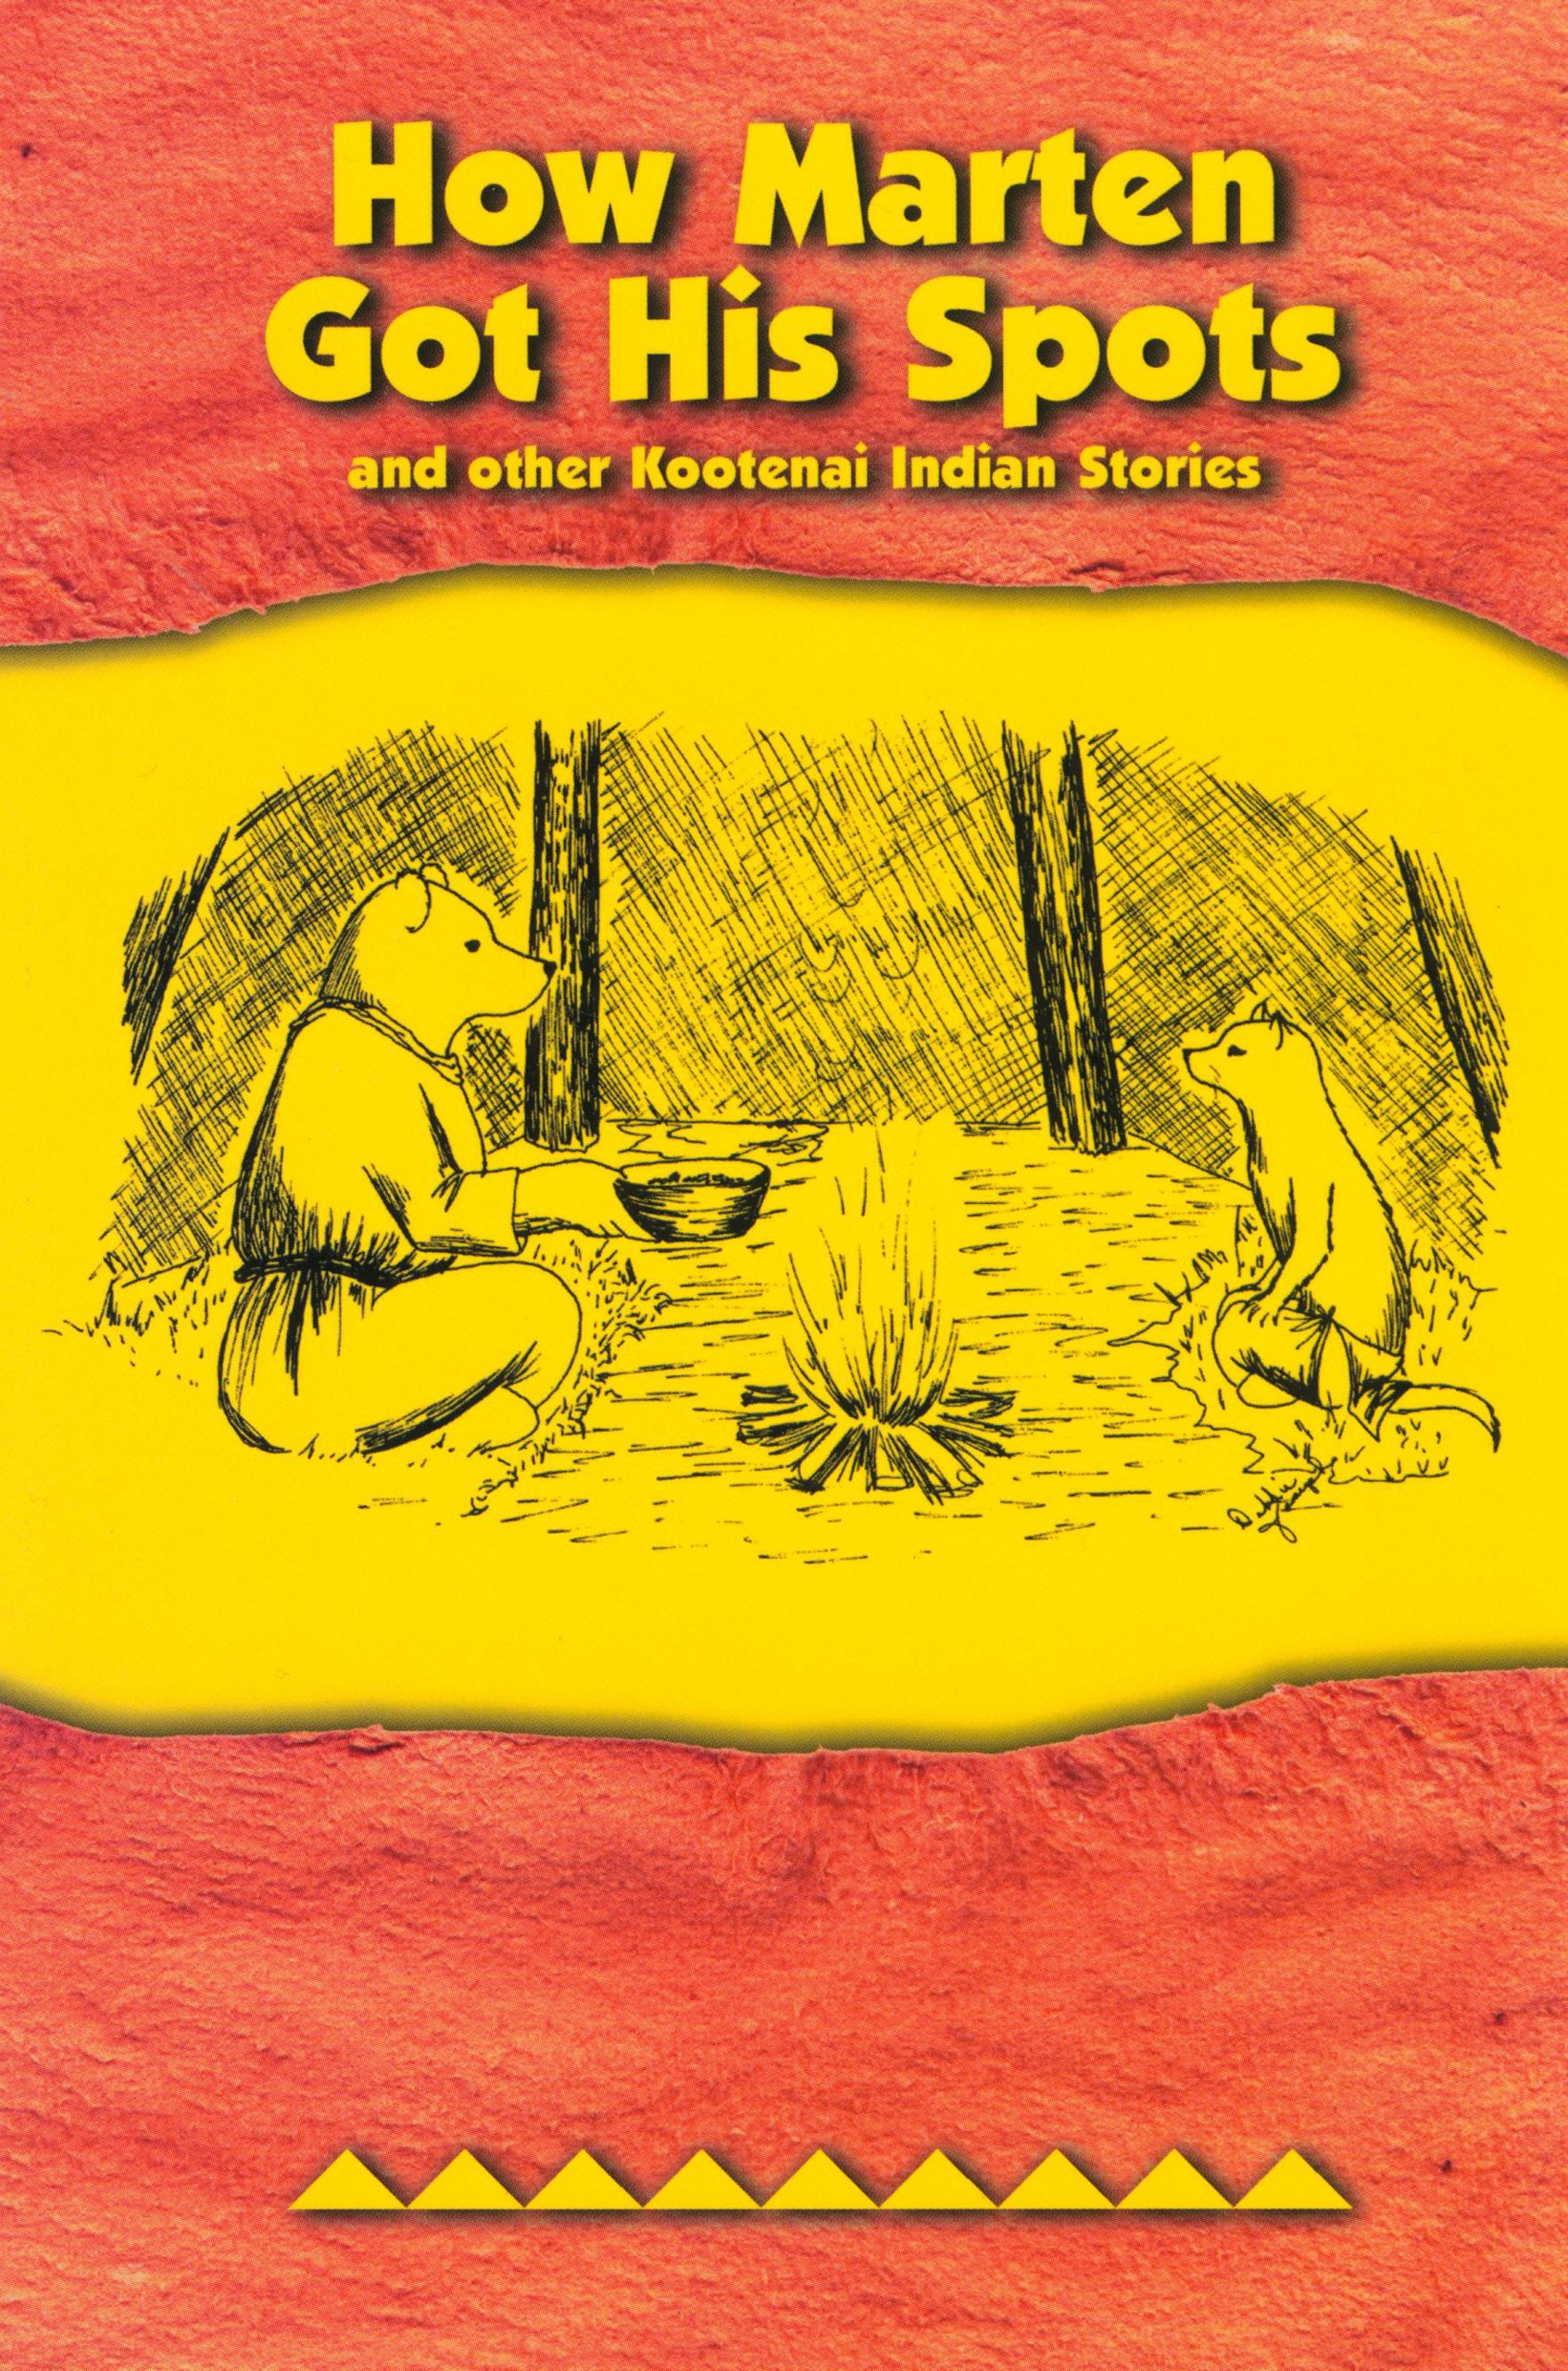 How Marten Got His Spots: and Other Kootenai Indian Stories PDF